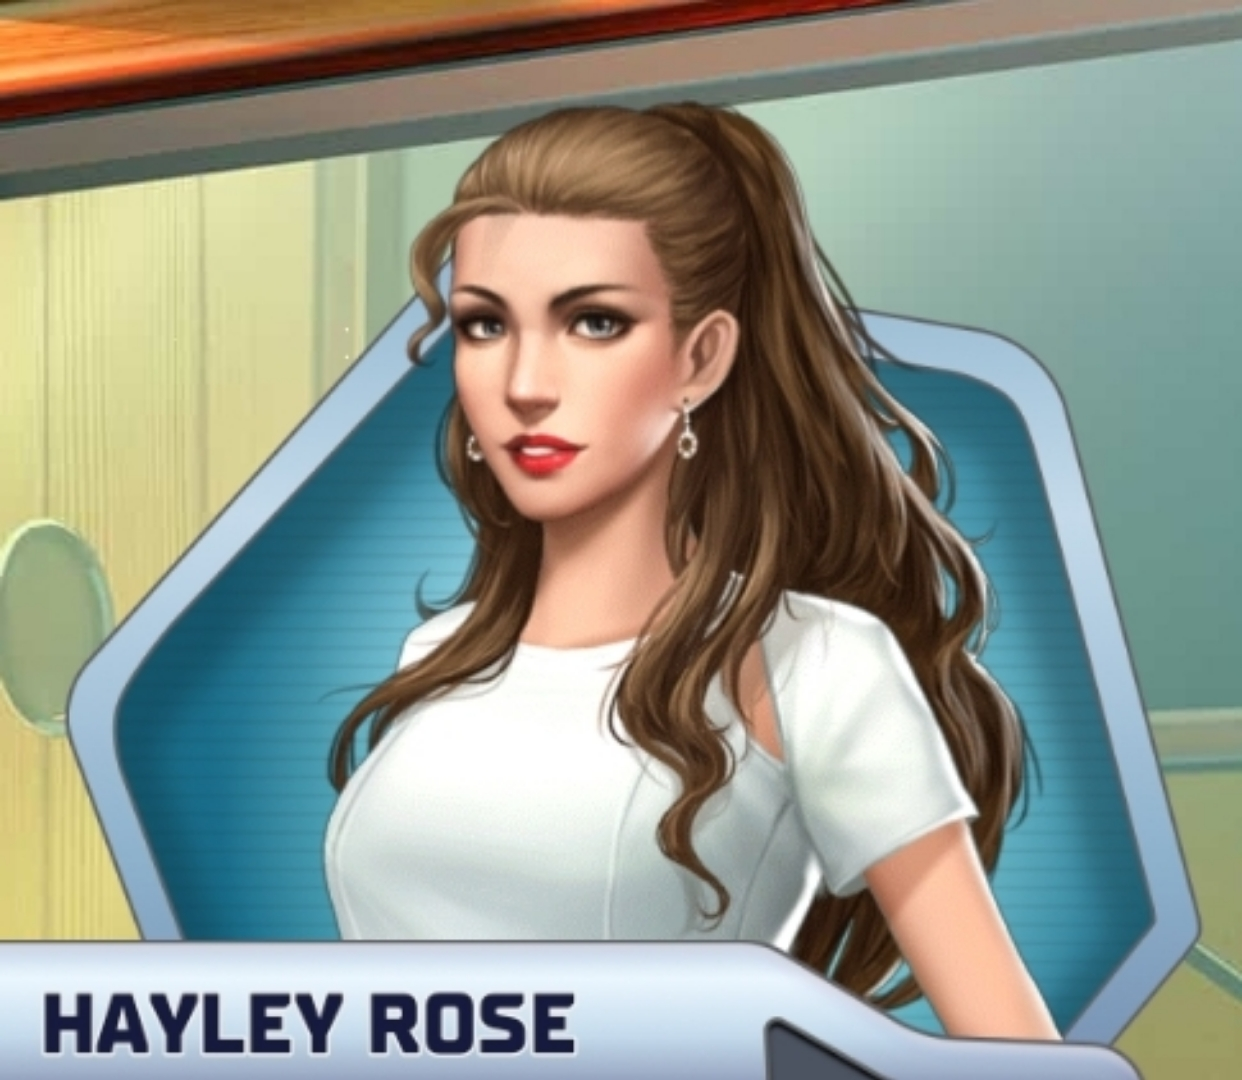 File:Hayley Rose.jpg